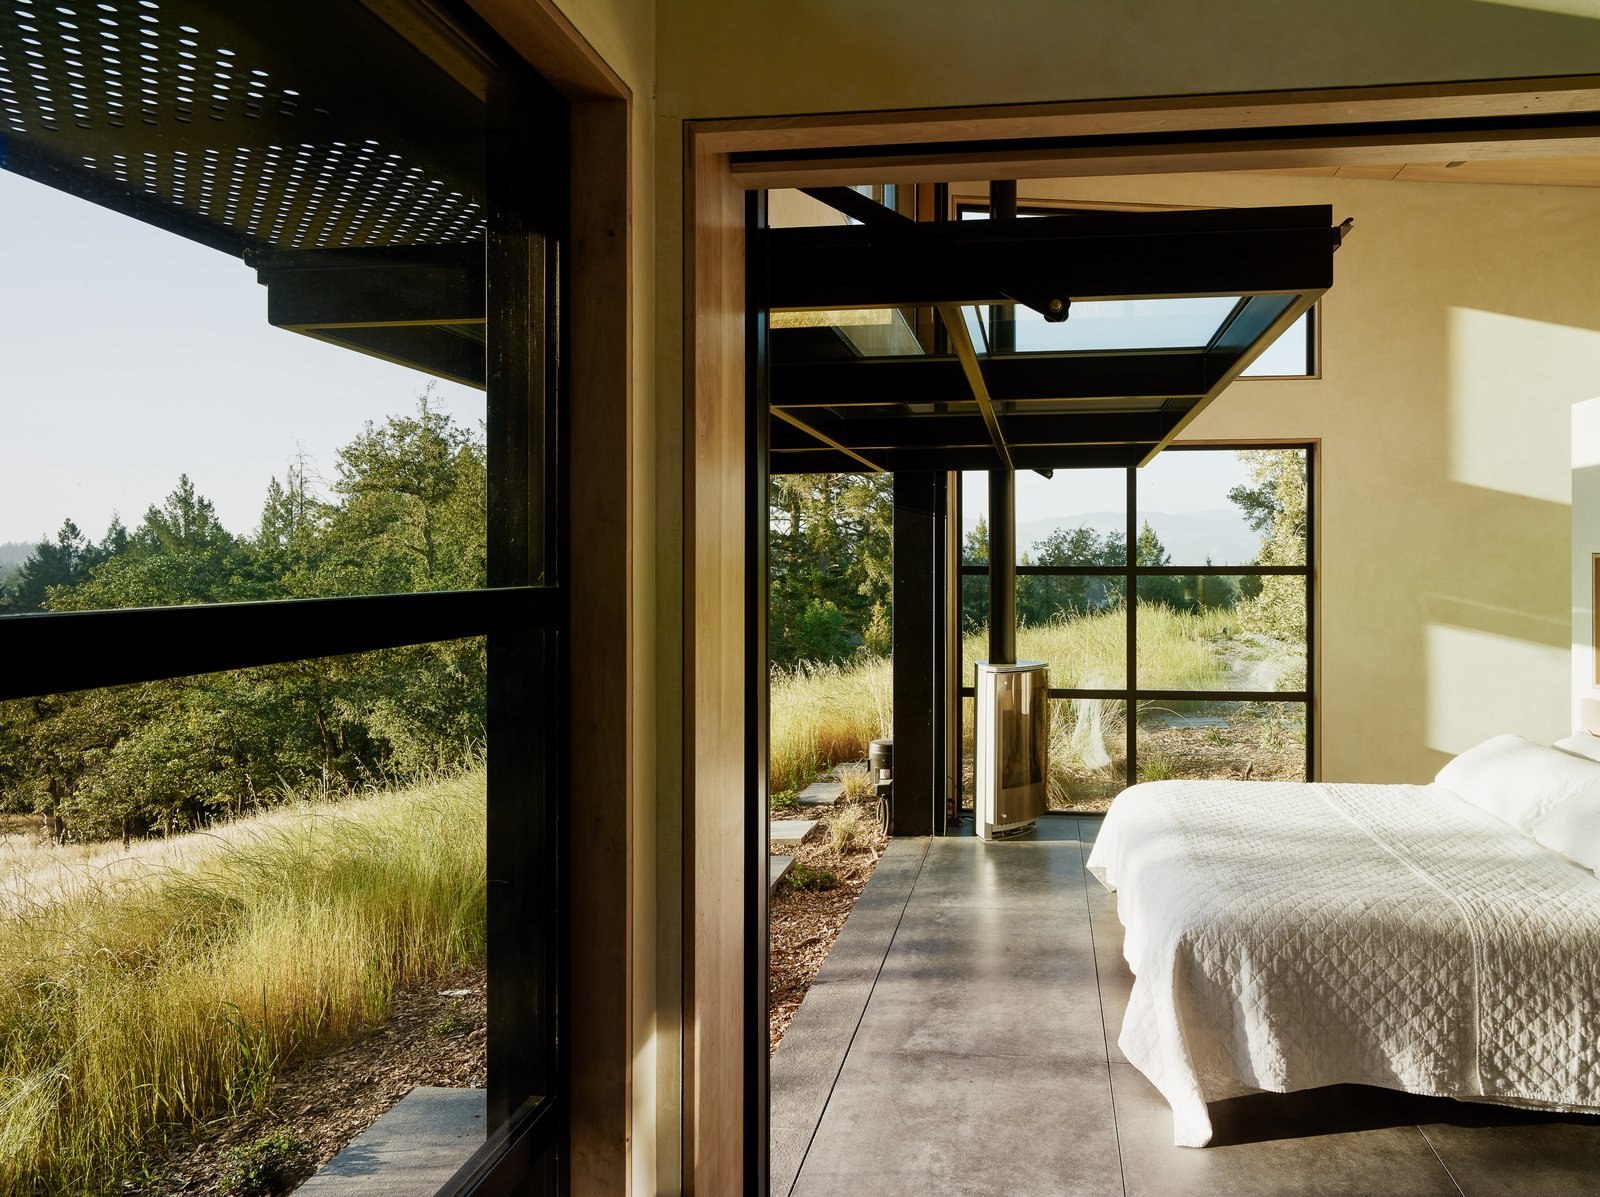 Bedroom, Bed, and Concrete Floor Even the bedrooms are just a few steps away from nature.  Photo 7 of 10 in Four Enormous Glass Doors Turn This Northern California Home Into an Outdoor Pavilion from Sonoma Wine Country I